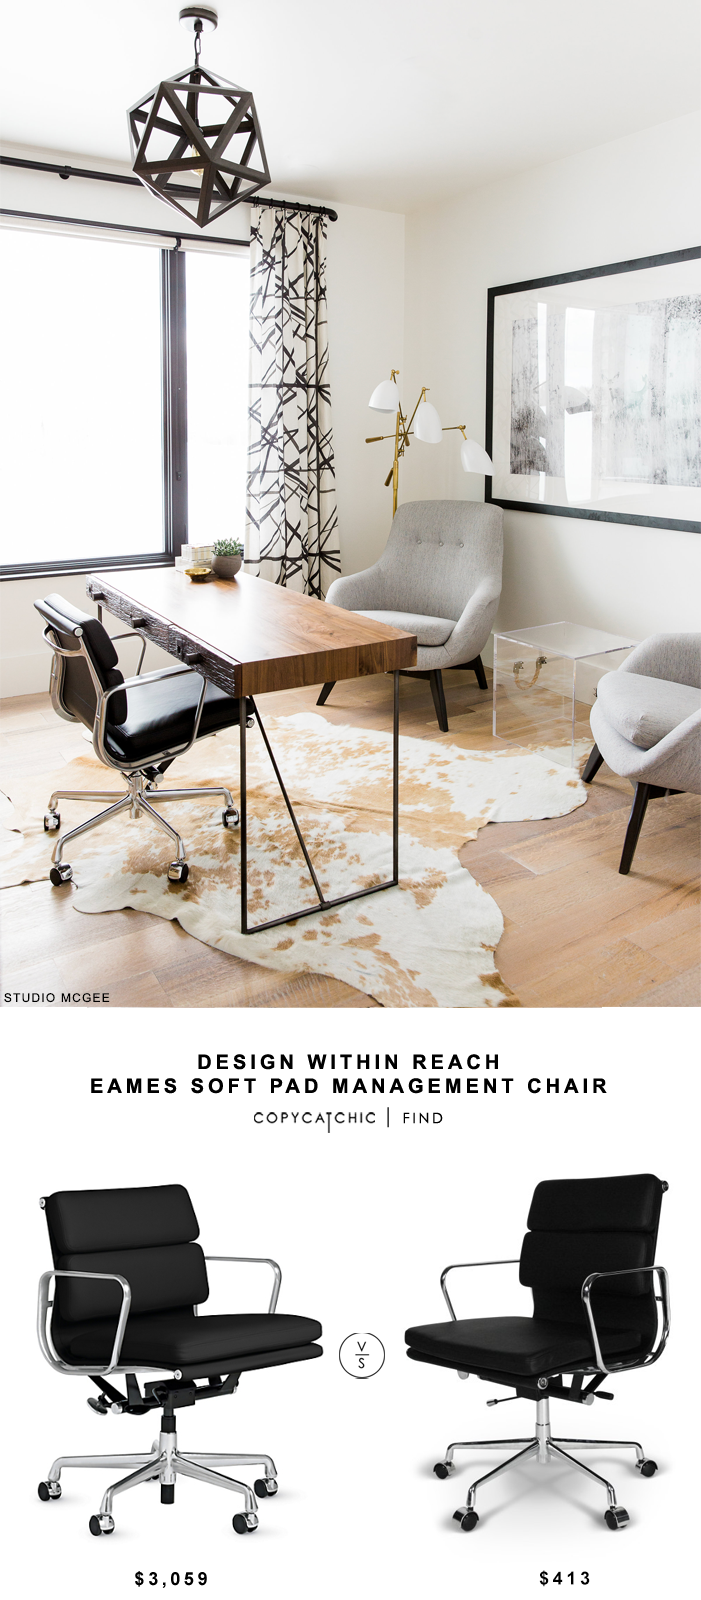 Design within Reach Eames Soft Pad Management chair for $3,059 vs Mod ...